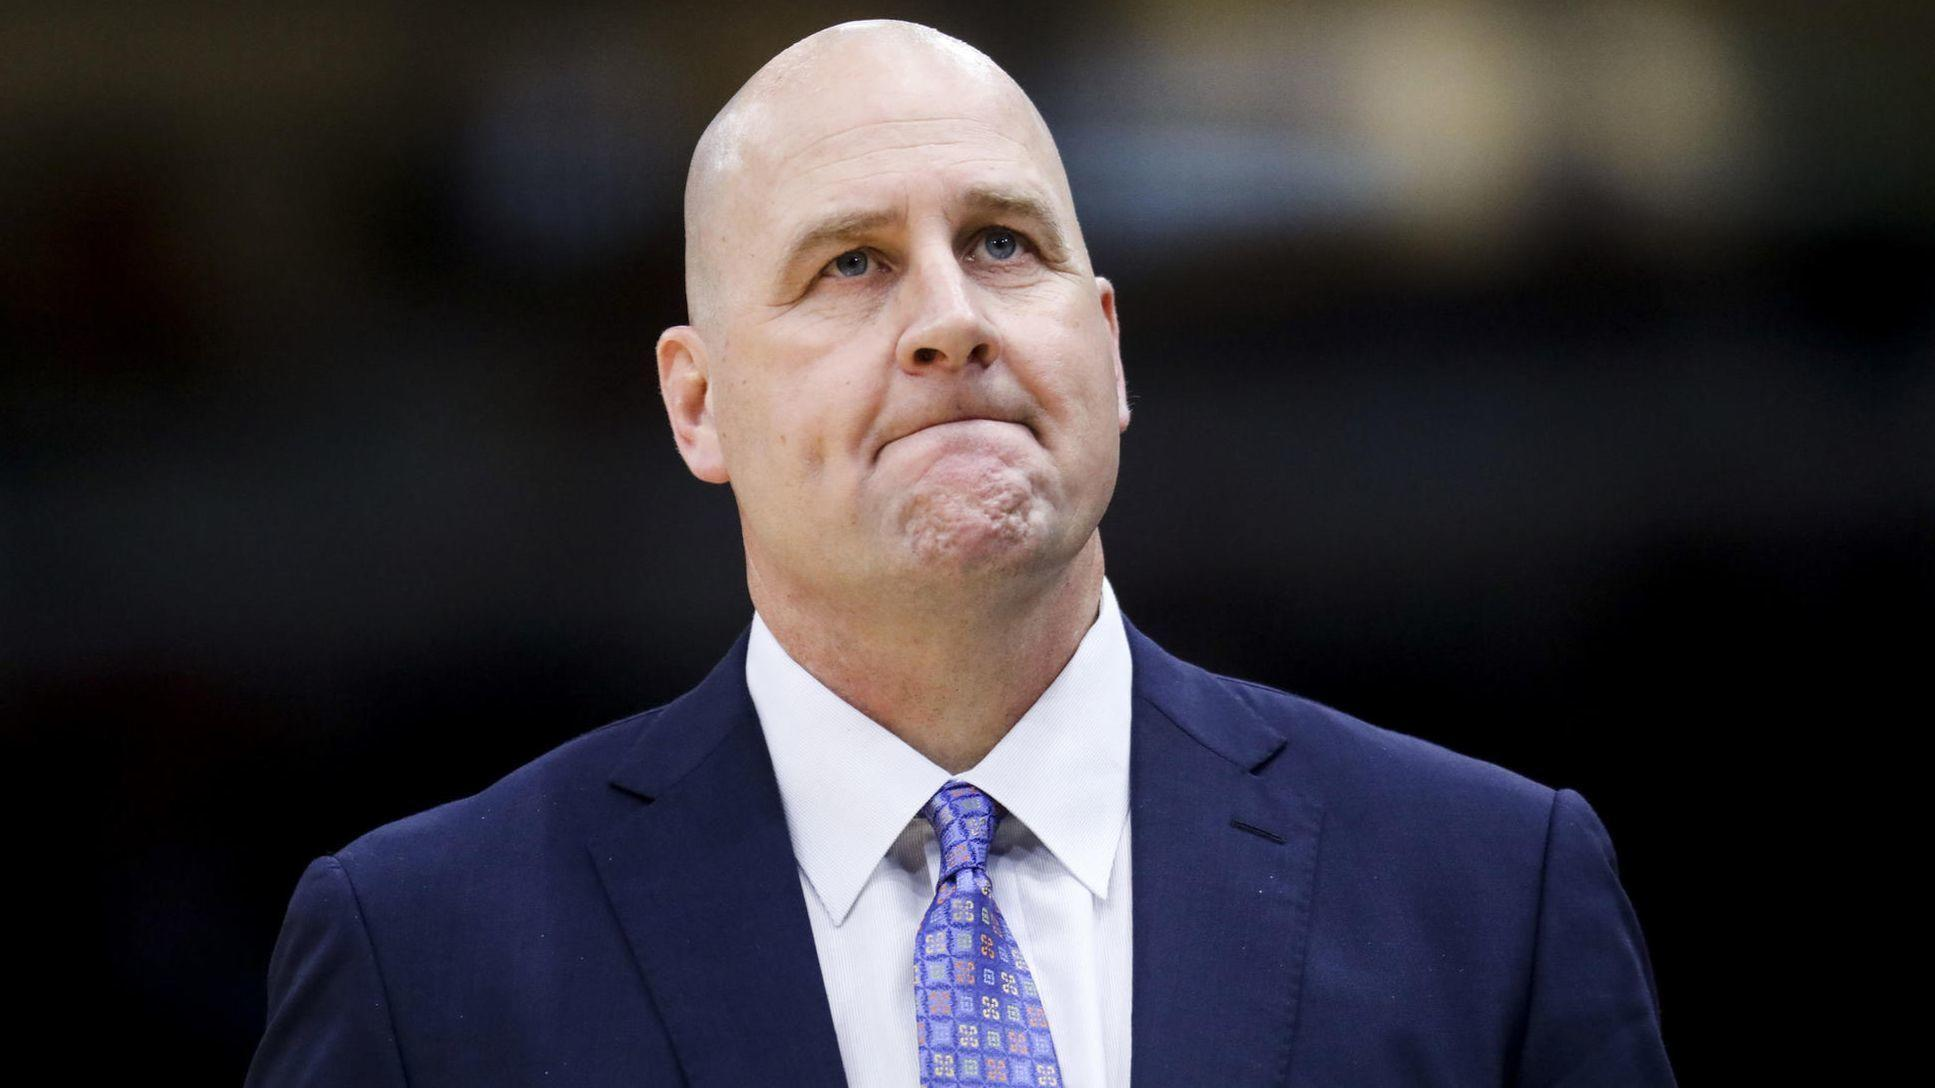 jim boylen - photo #2